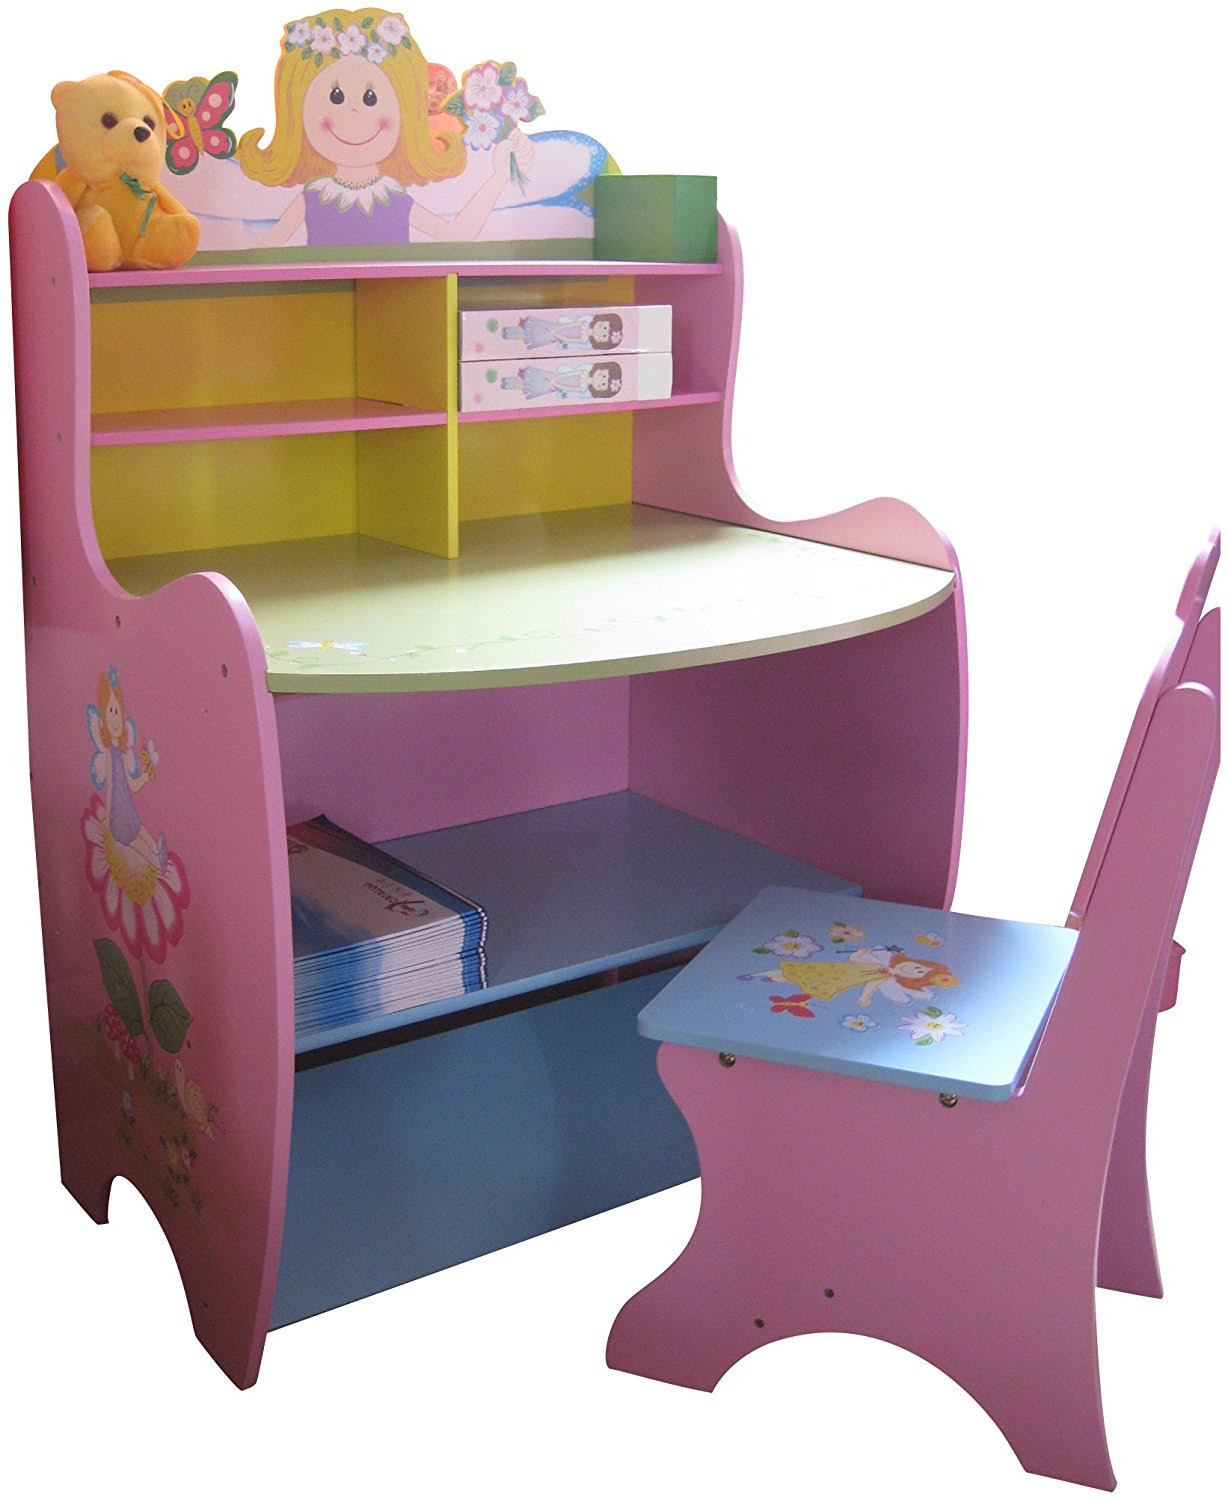 Childrens Desk Chair Wooden Writing Storage Fairy Bedroom ...